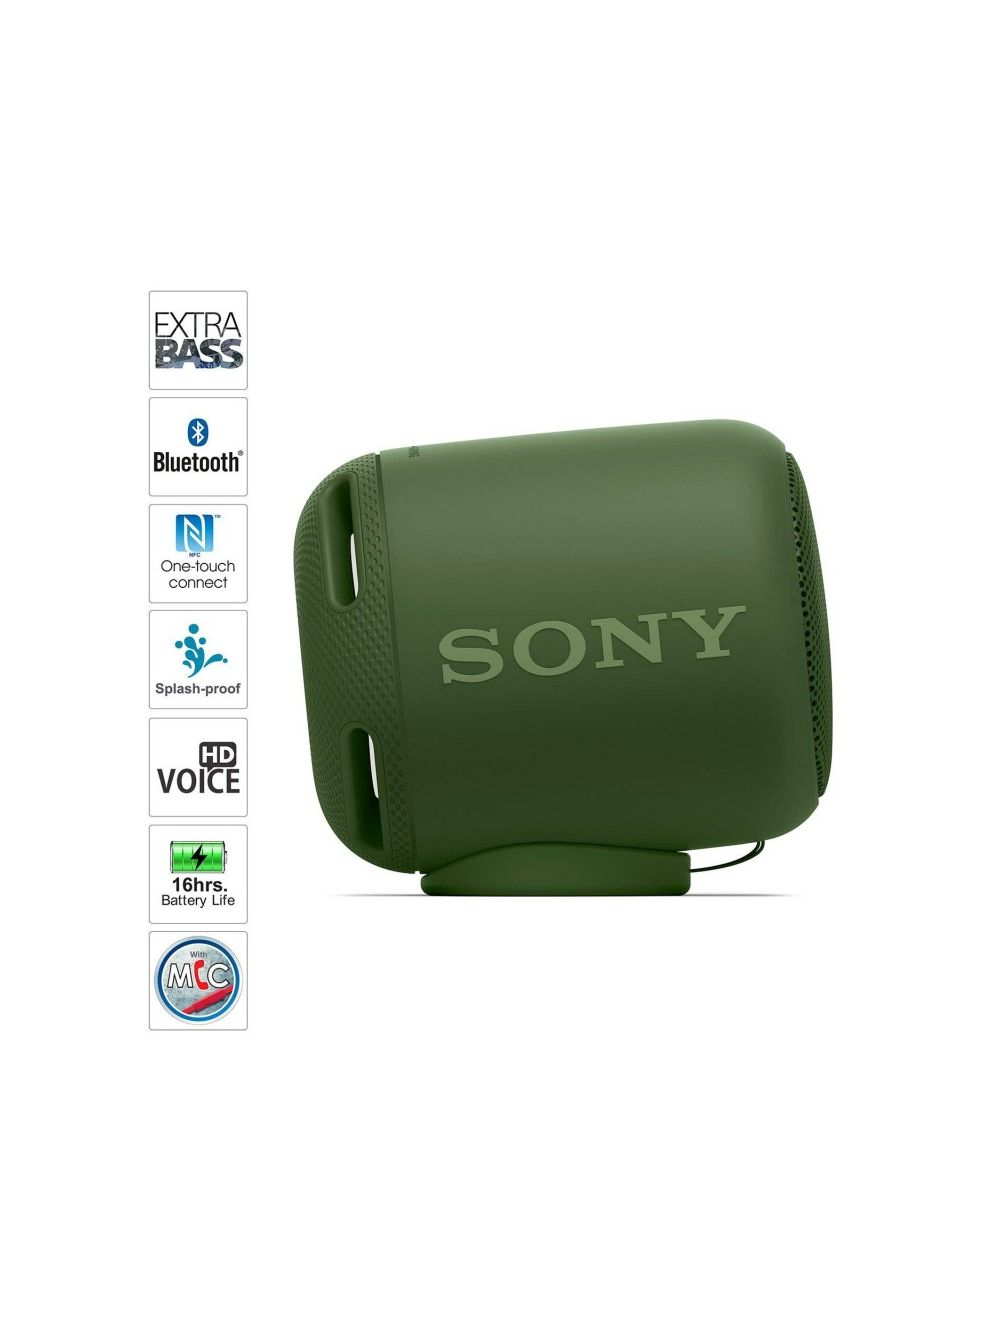 Sony Extra Bass SRS-XB5 Portable Wireless Speakers (Green)